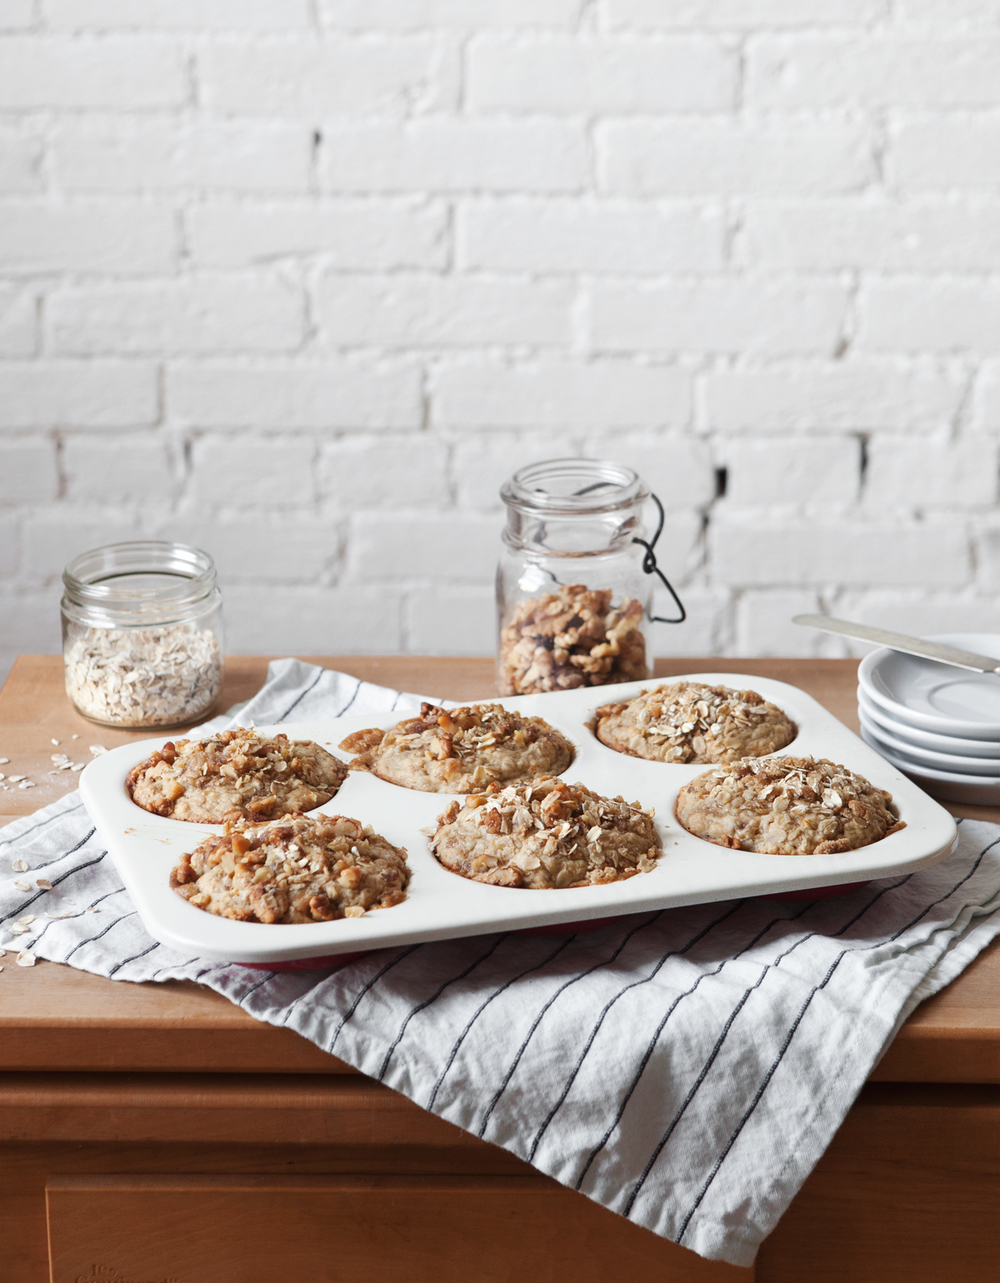 oat-and-banana-nut-muffins_01.jpg